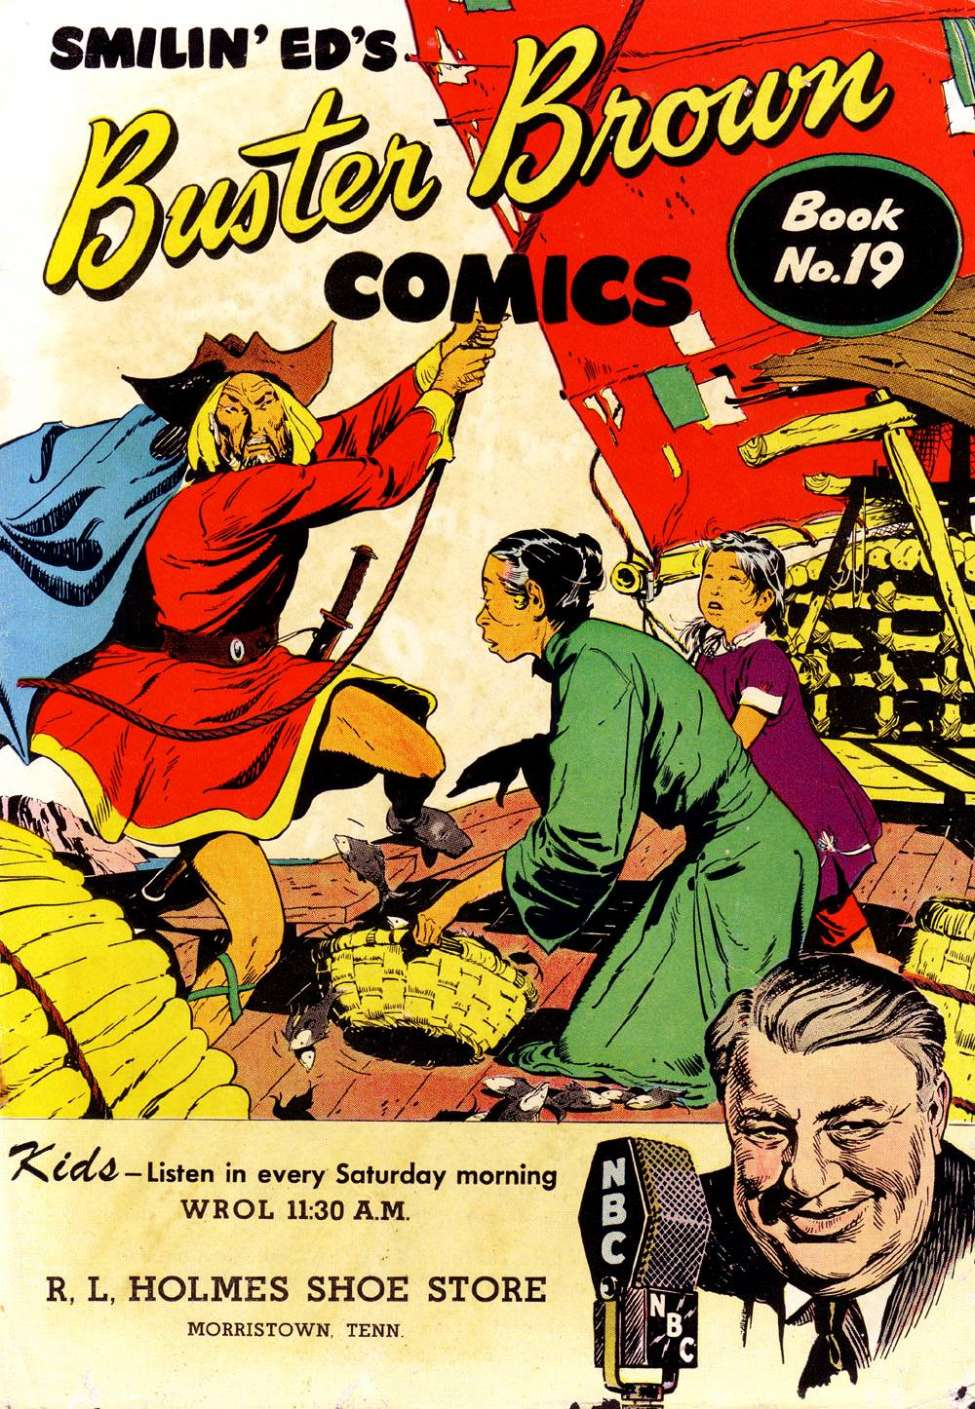 Buster Brown Comics #19, The Brown Shoe Company